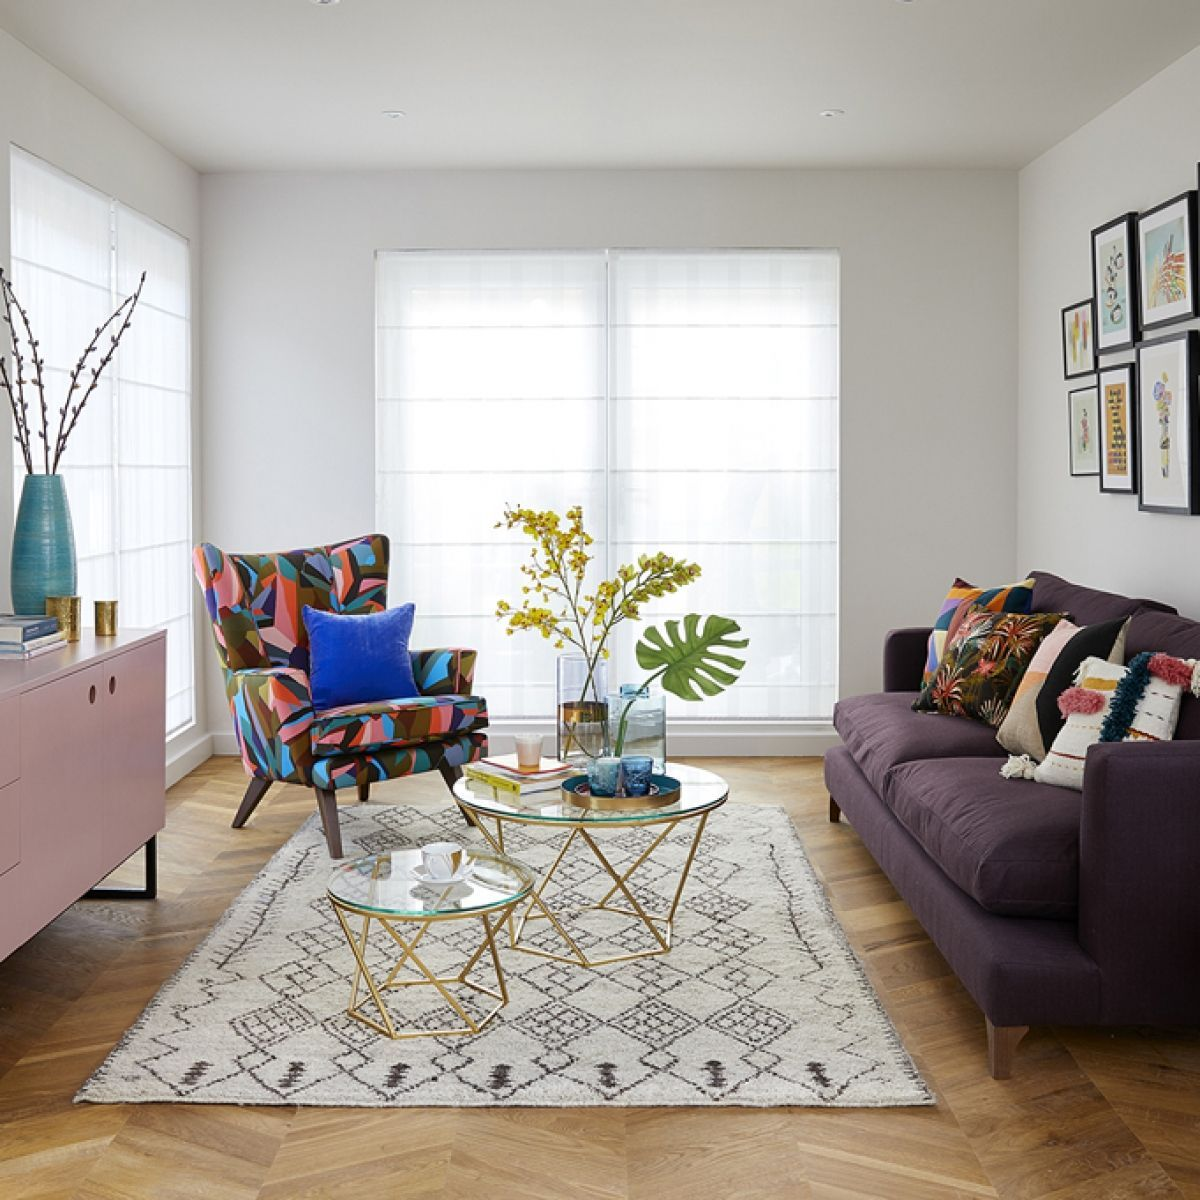 Open Plan Living Room With Pale Off White Walls And Oak Parquet Floor Signauture Armchair By Open Living Room Design Living Room Planner Open Plan Living Room